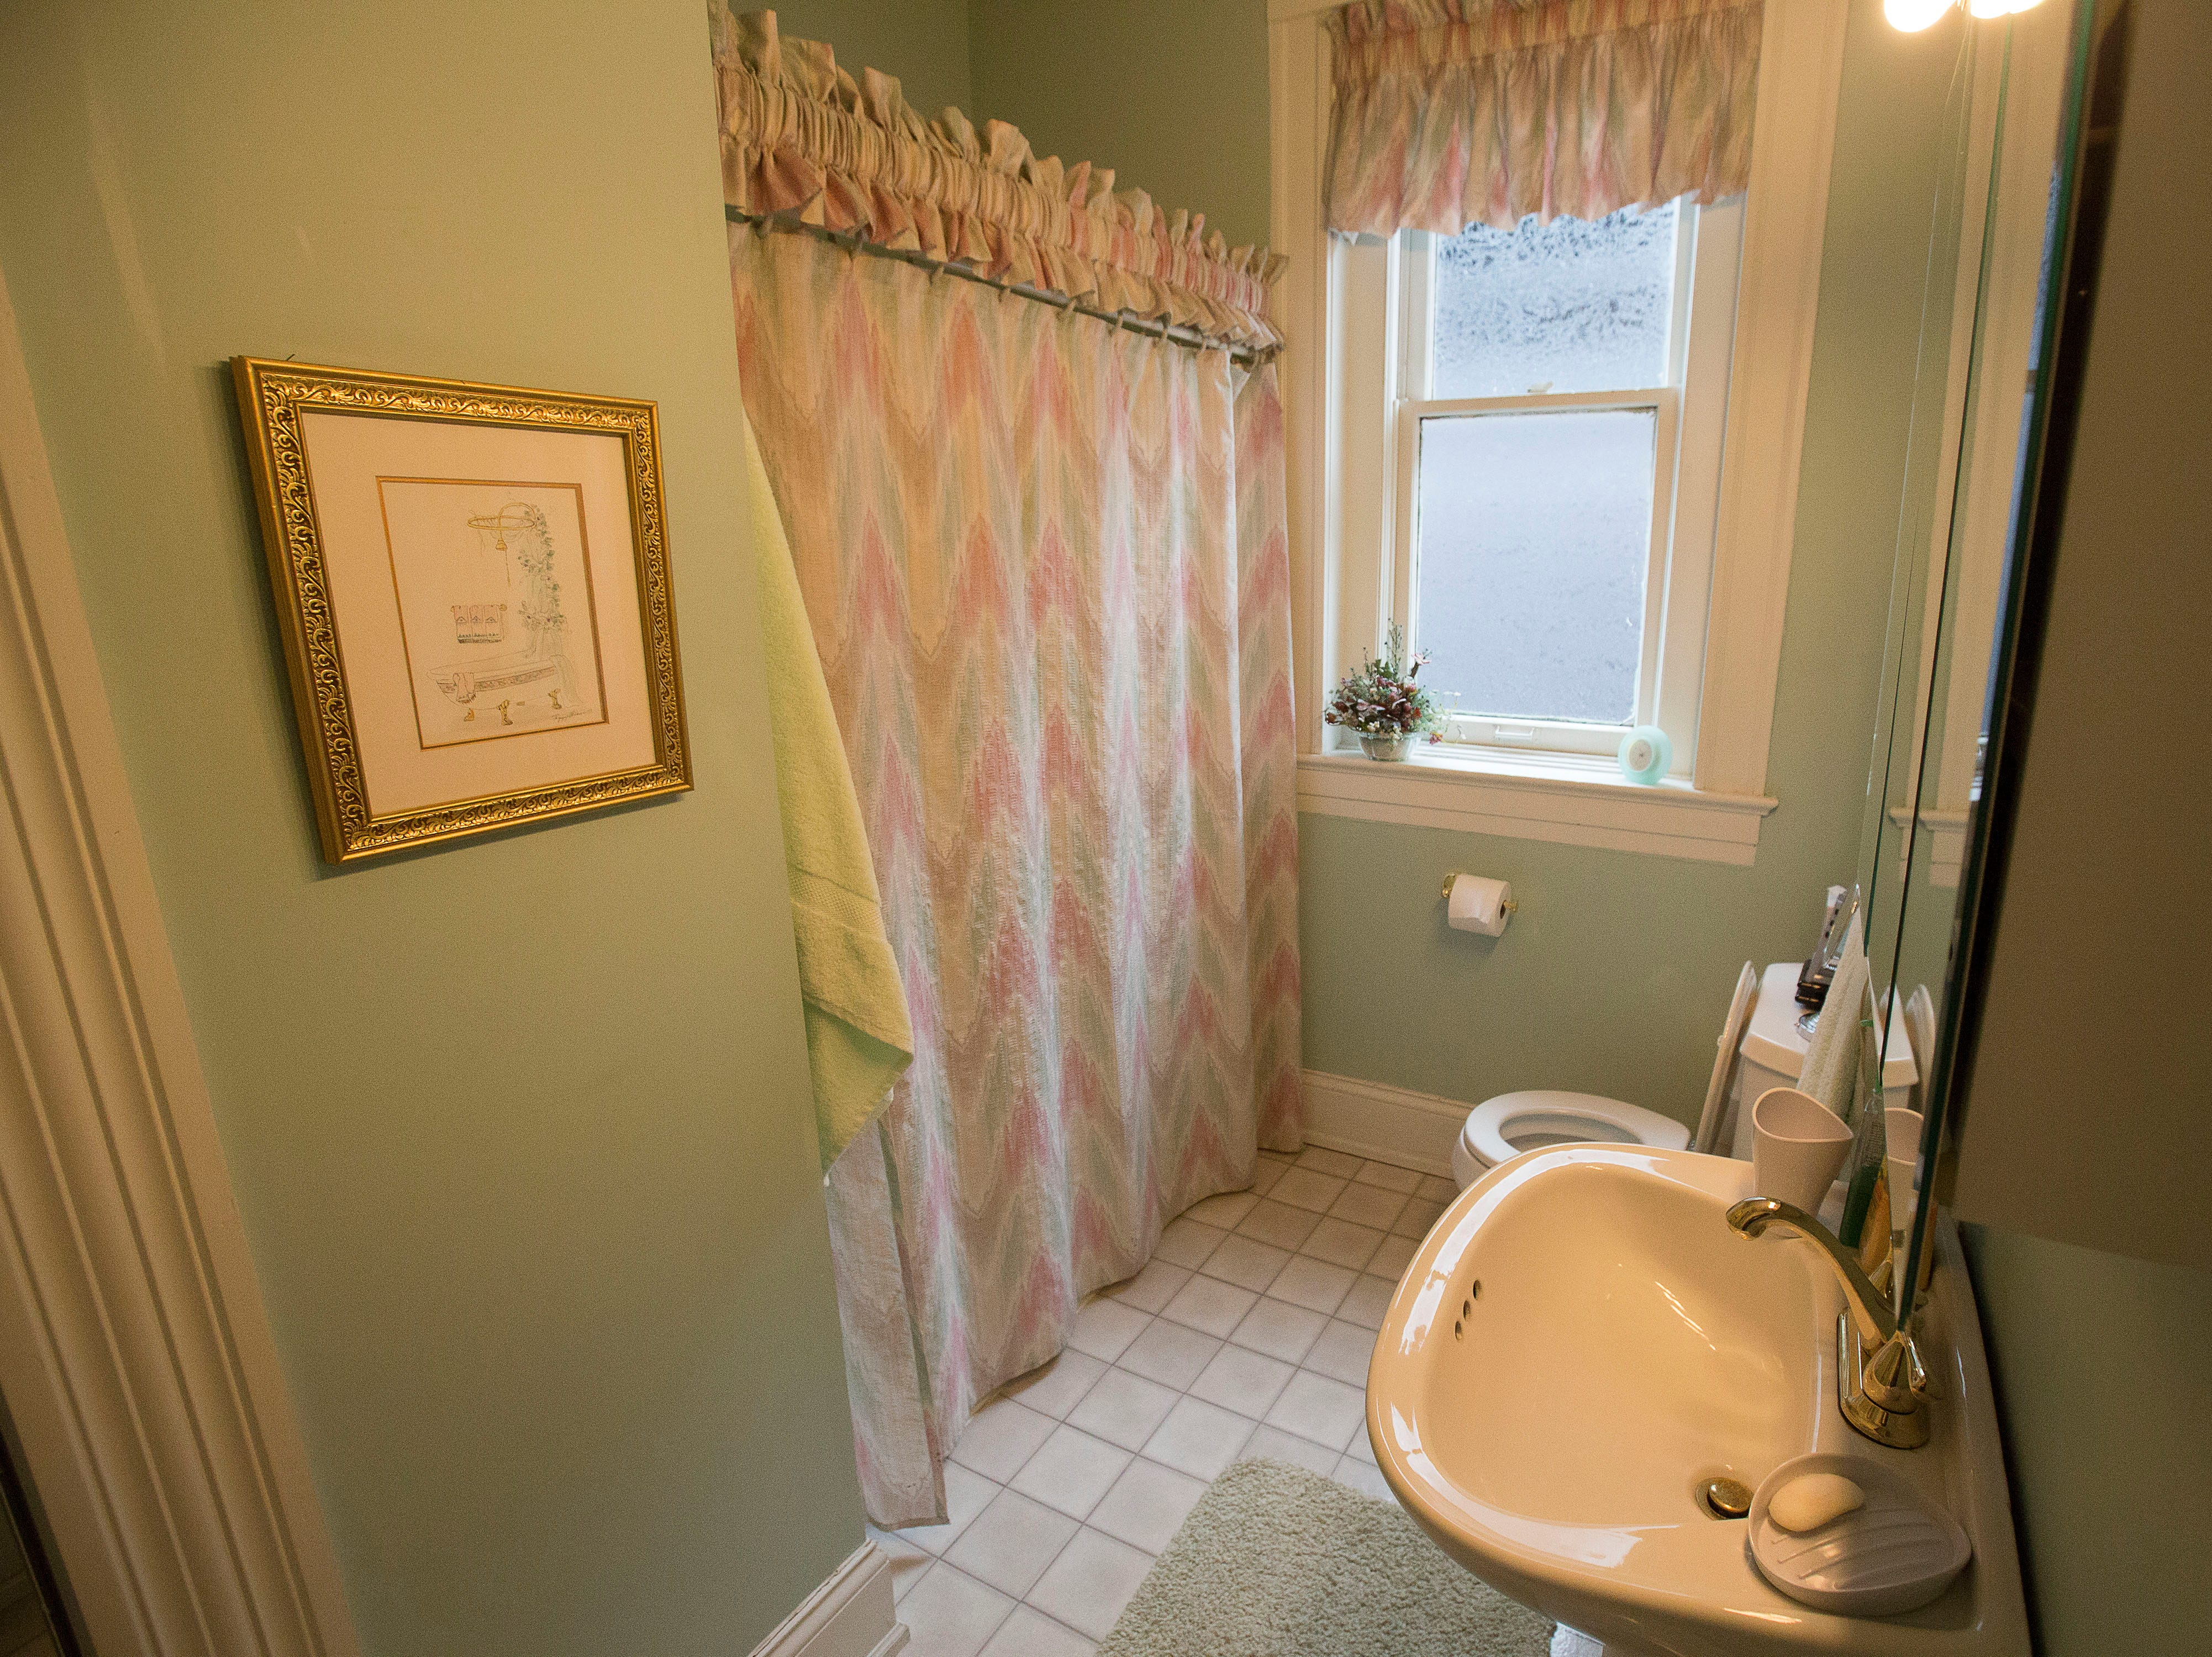 Another second floor bathroom at historic Cherokee Triangle home in Louisville, KY.